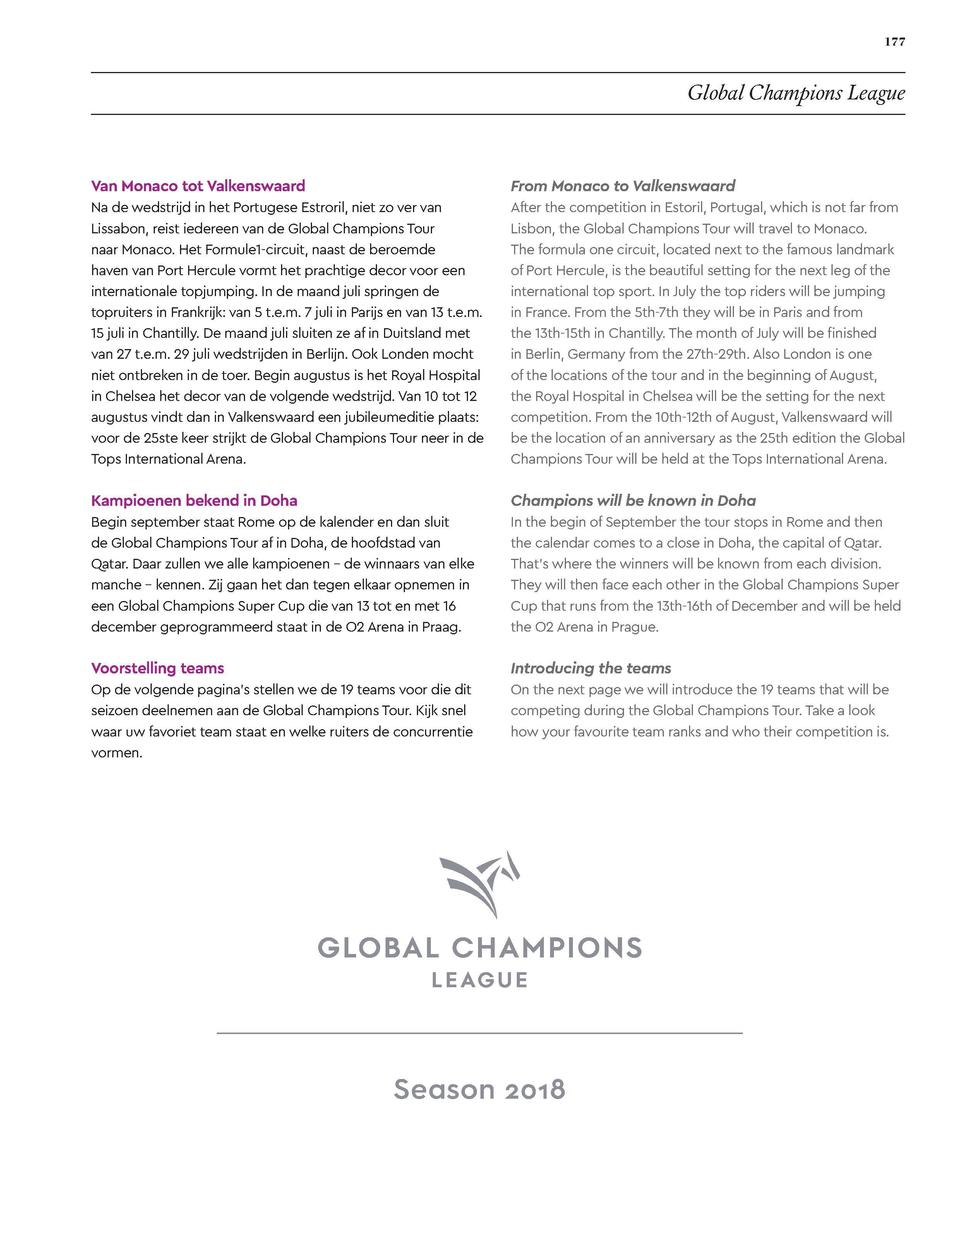 176  177  EVENTS  Global Champions League  GLOBAL CHAMPIONS LEAGUE Global Champions Tour belooft veel spektakel Text   Sti...